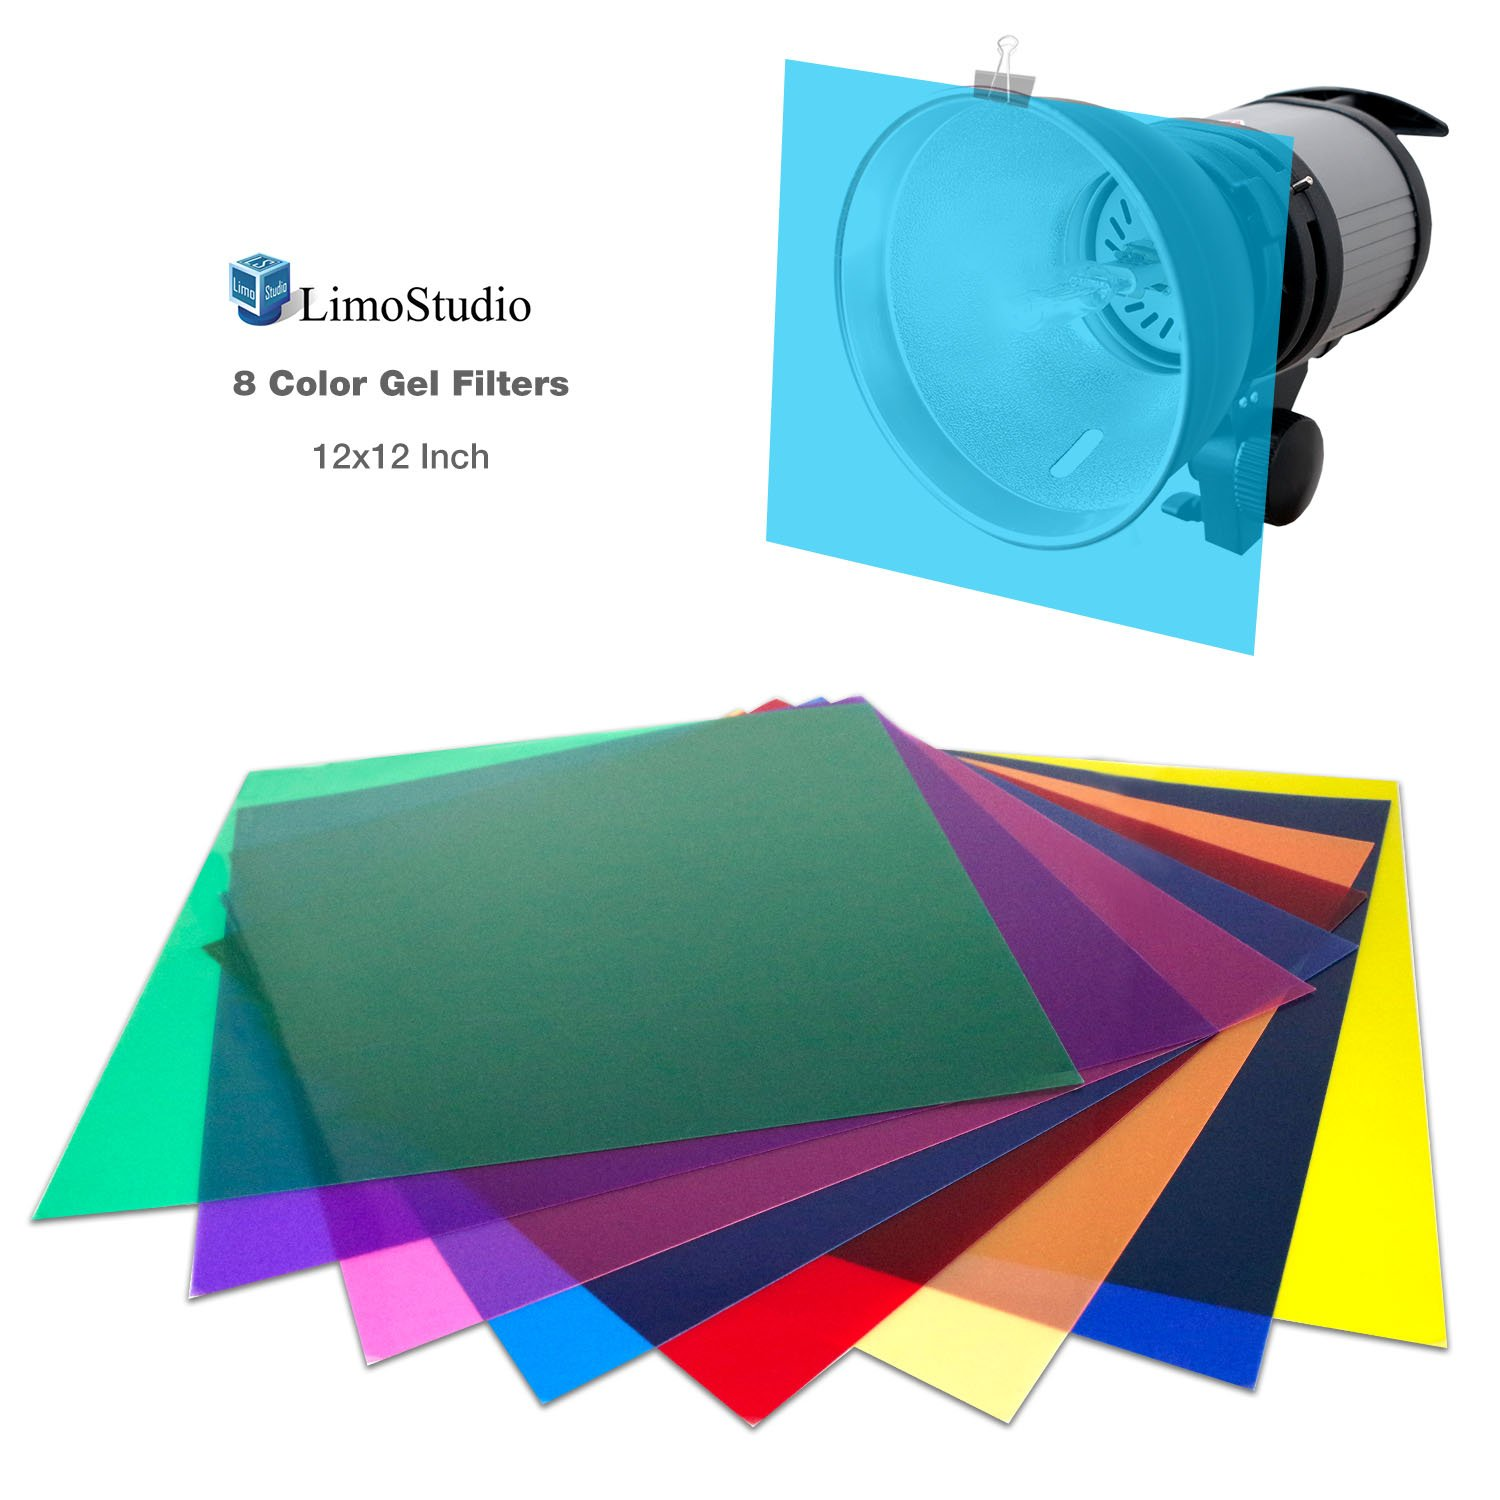 LimoStudio 12'' x 12'' 8pcs Color Gel Lighting Filter Transparent Color Film Plastic Sheets for Camera Flash Light , AGG2555 by LimoStudio